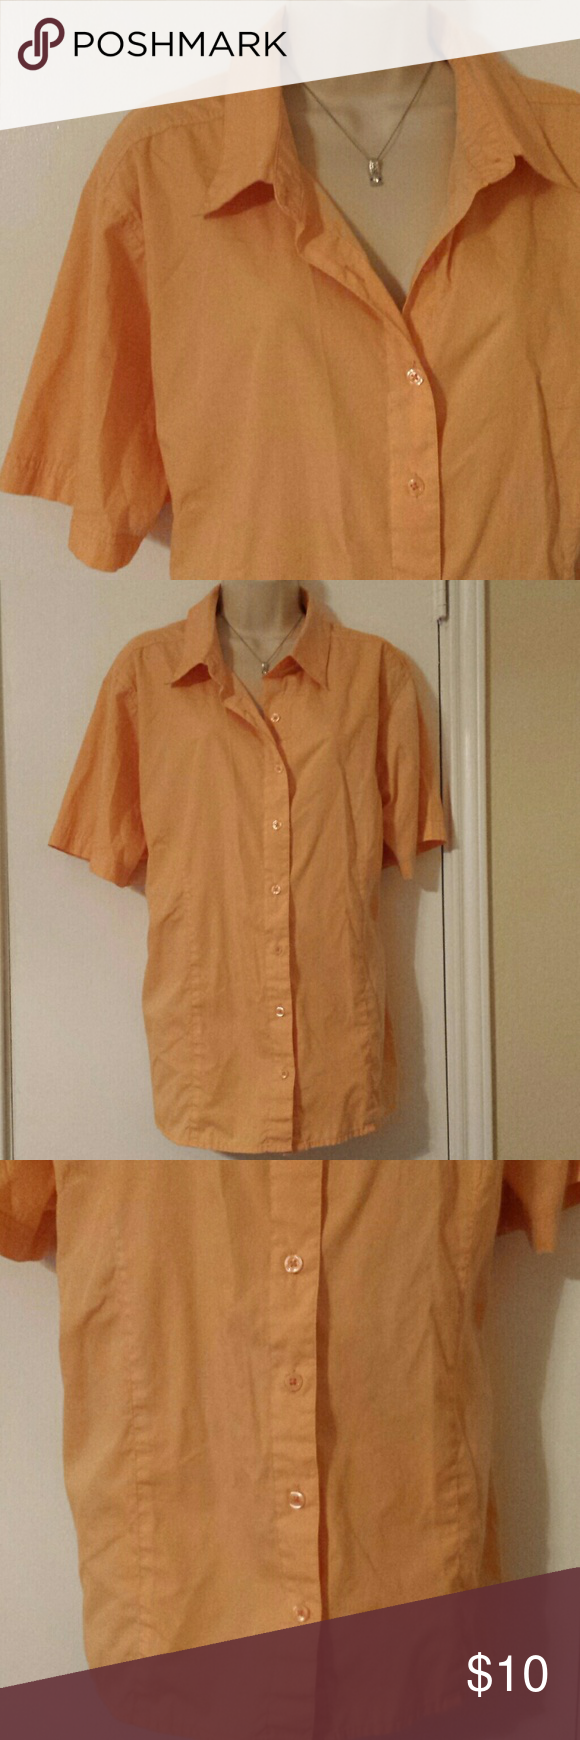 plus size 2x orangy peachy color (basic edition) Found a little dot on this shirt. It's an orange peachy color. basic edition Tops Button Down Shirts